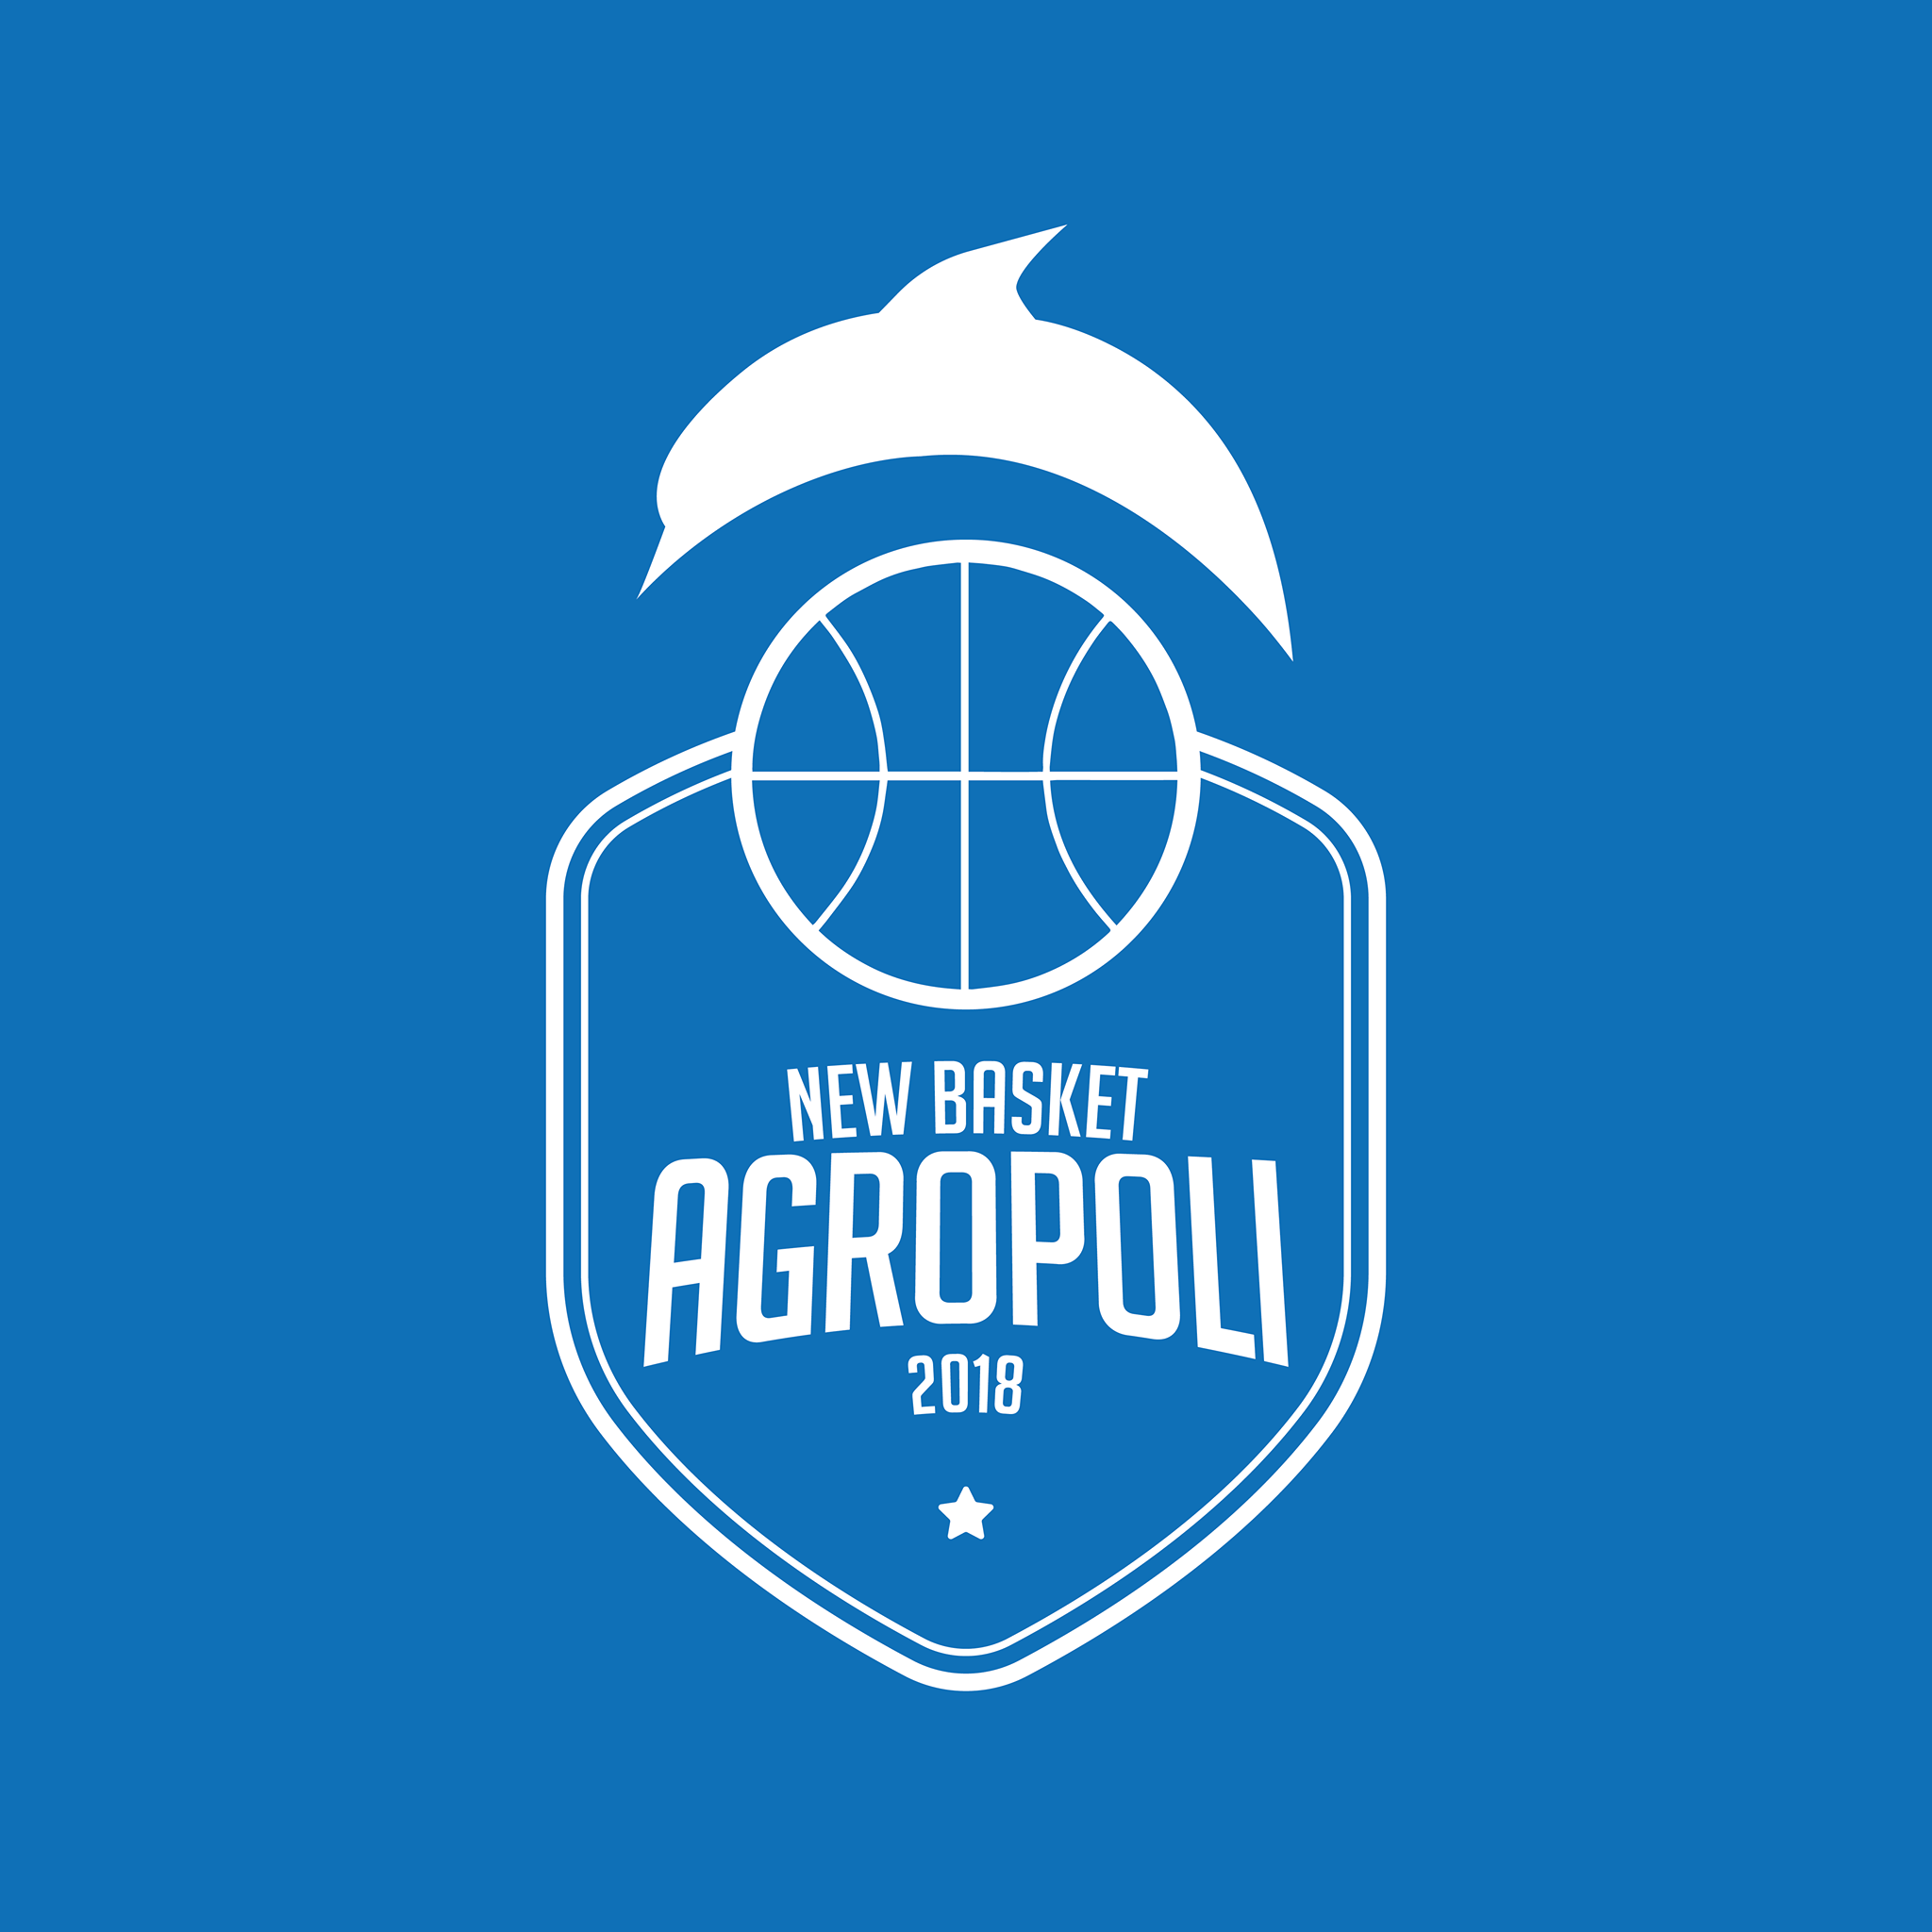 NEW BASKET AGROPOLI